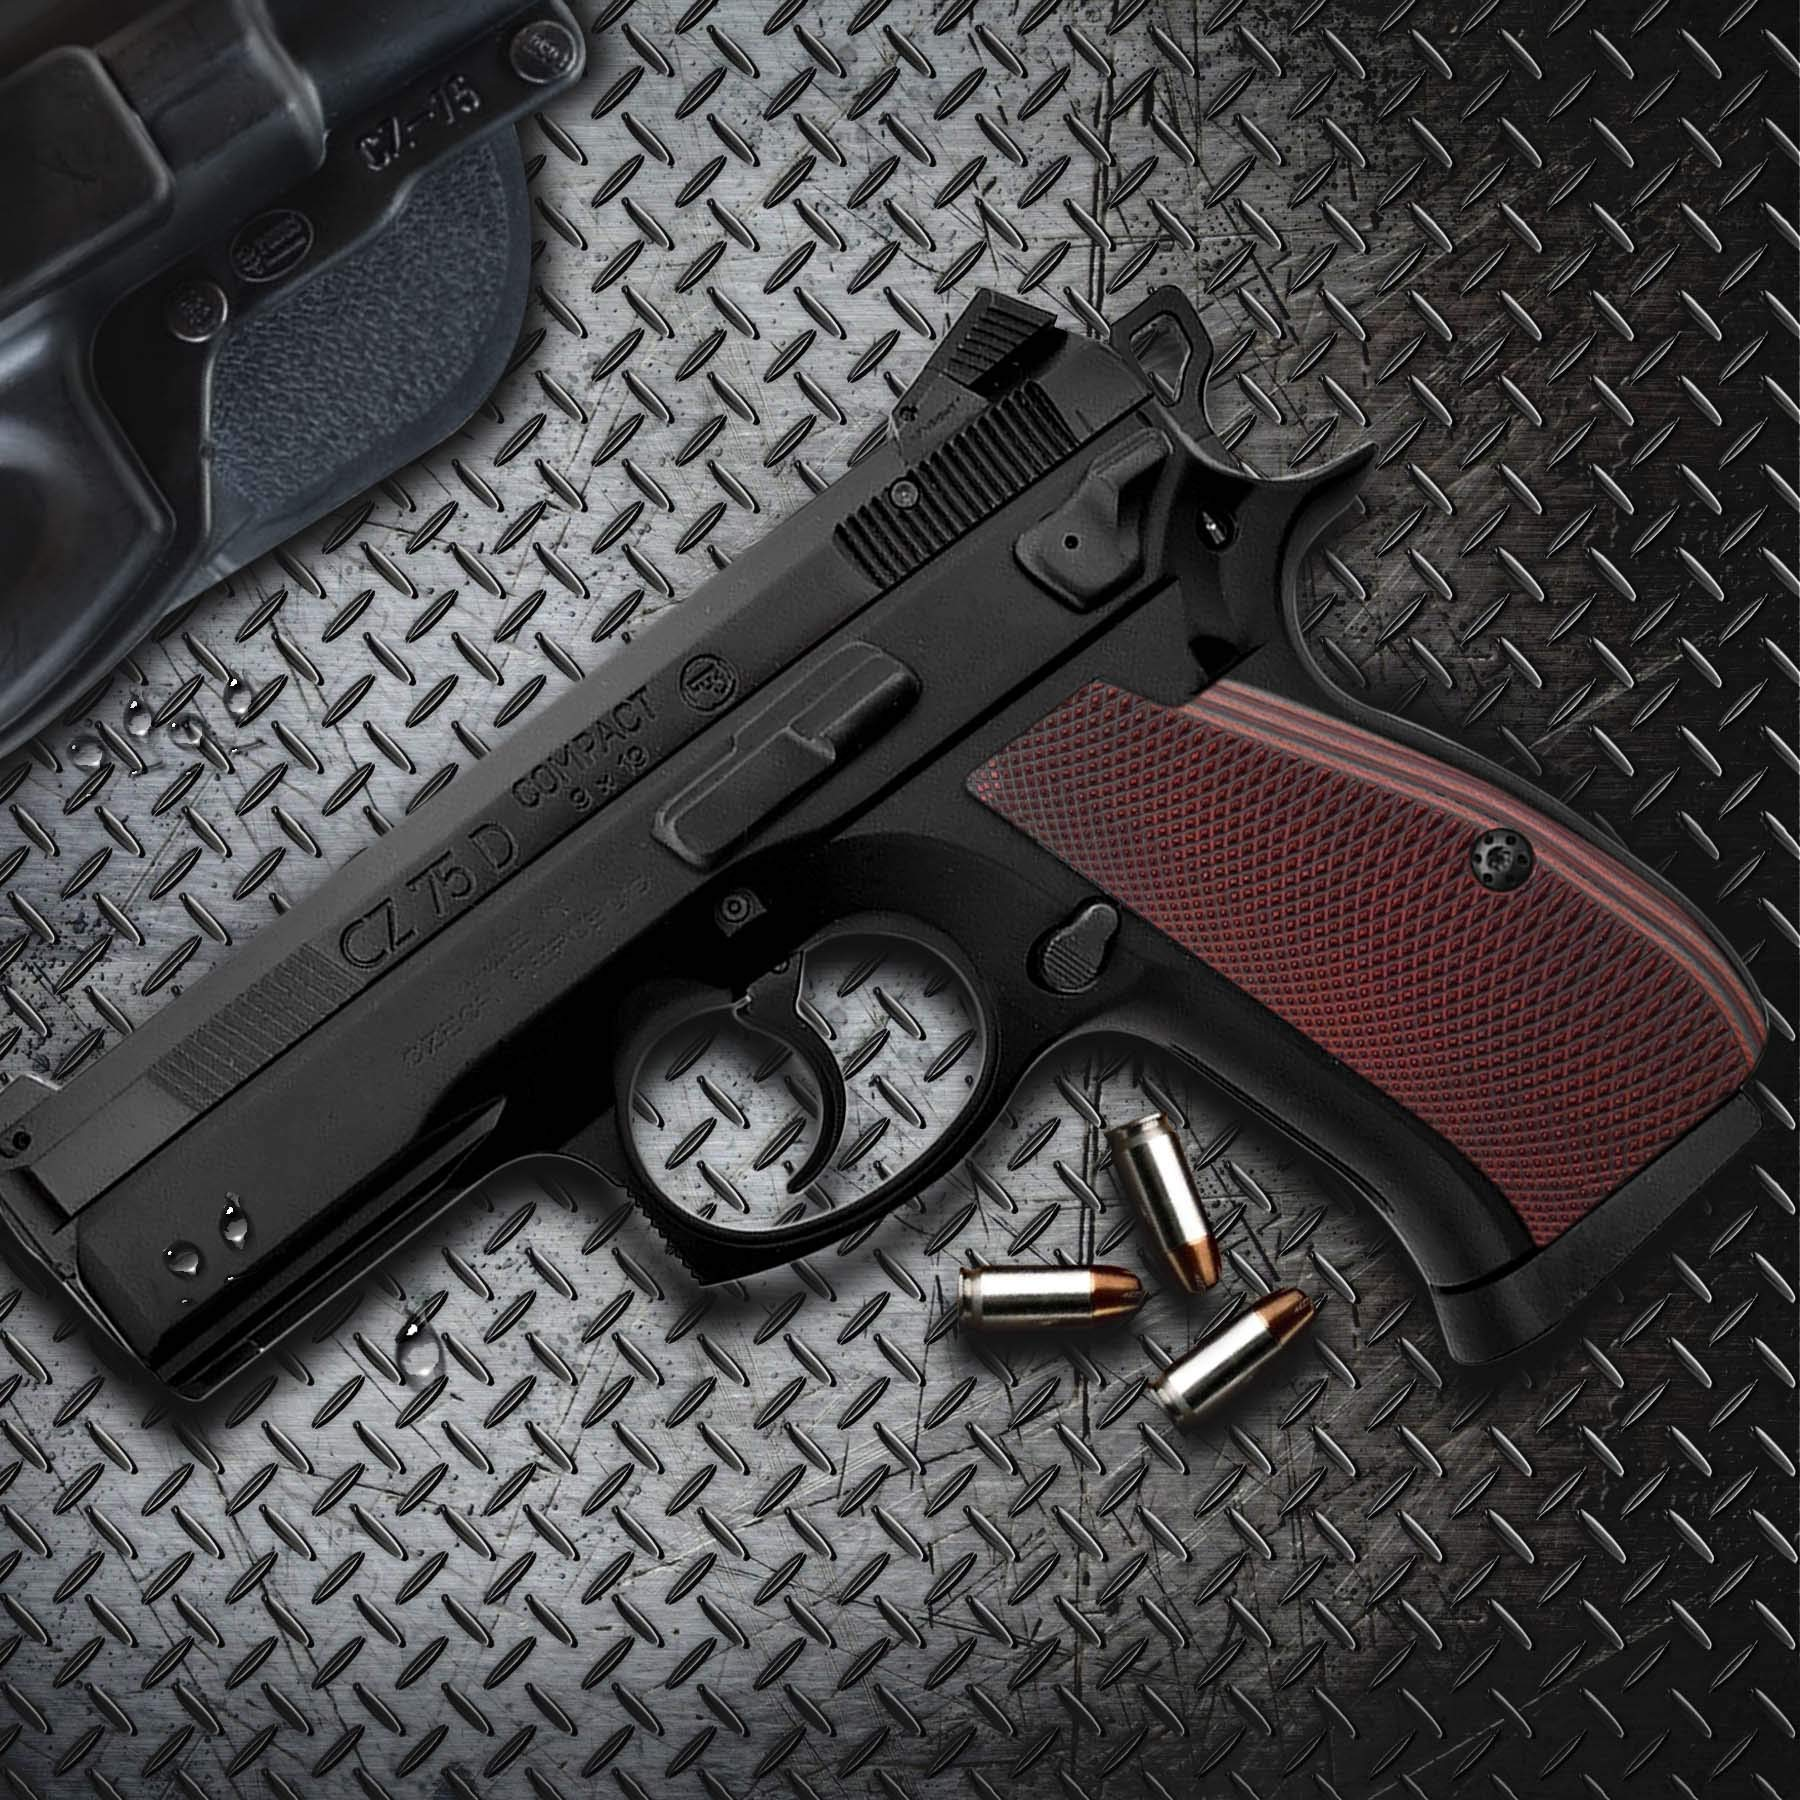 Cool Hand G10 Grips for CZ 75/85 Compact, Free Screws Included, Red/Black, SPC-PN-6 by Cool Hand